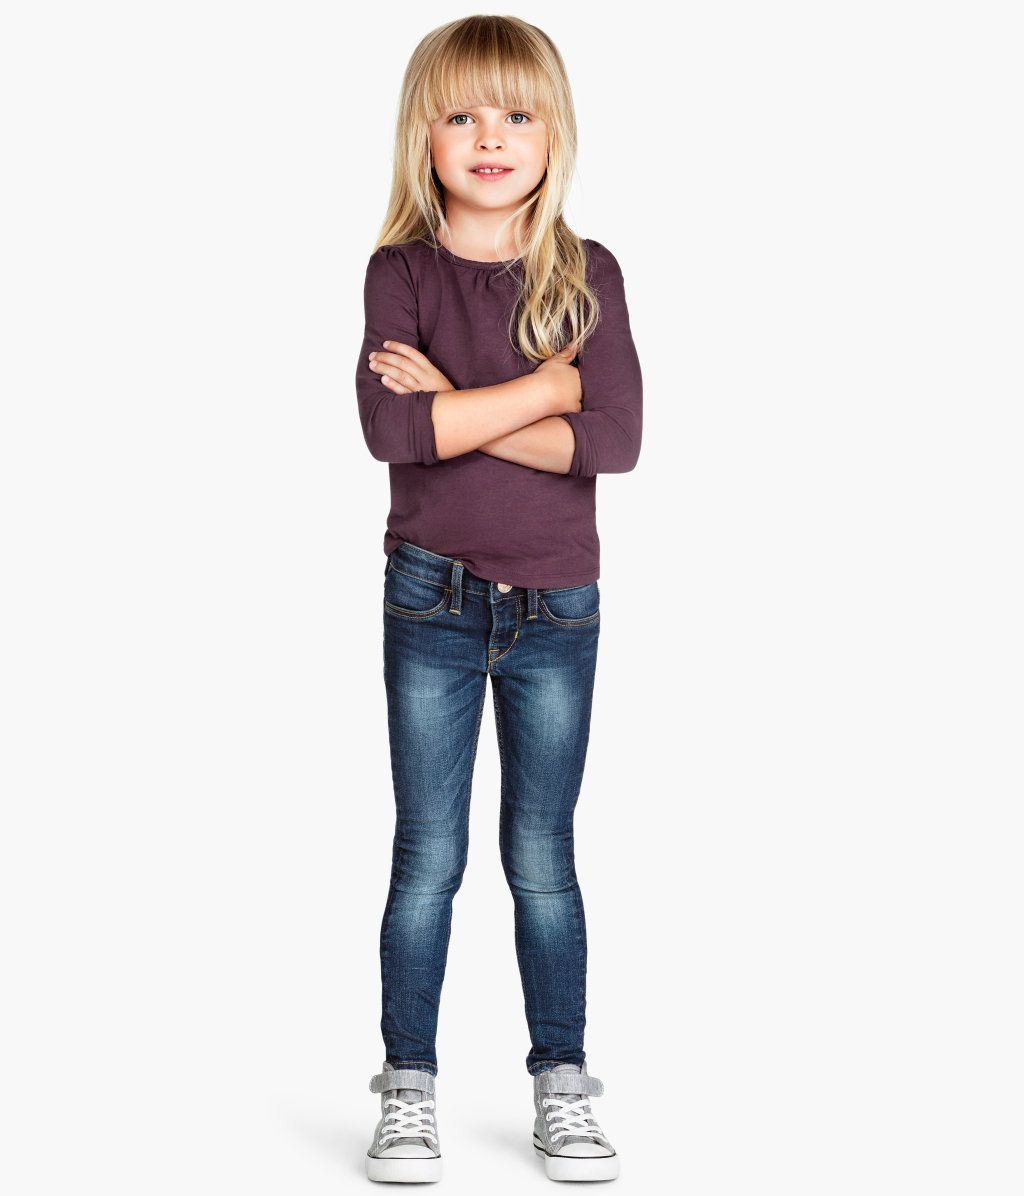 H M Skinny Fit Jeans 14 95 Little Girl Outfits School Girl Outfit Skinny Fit Jeans